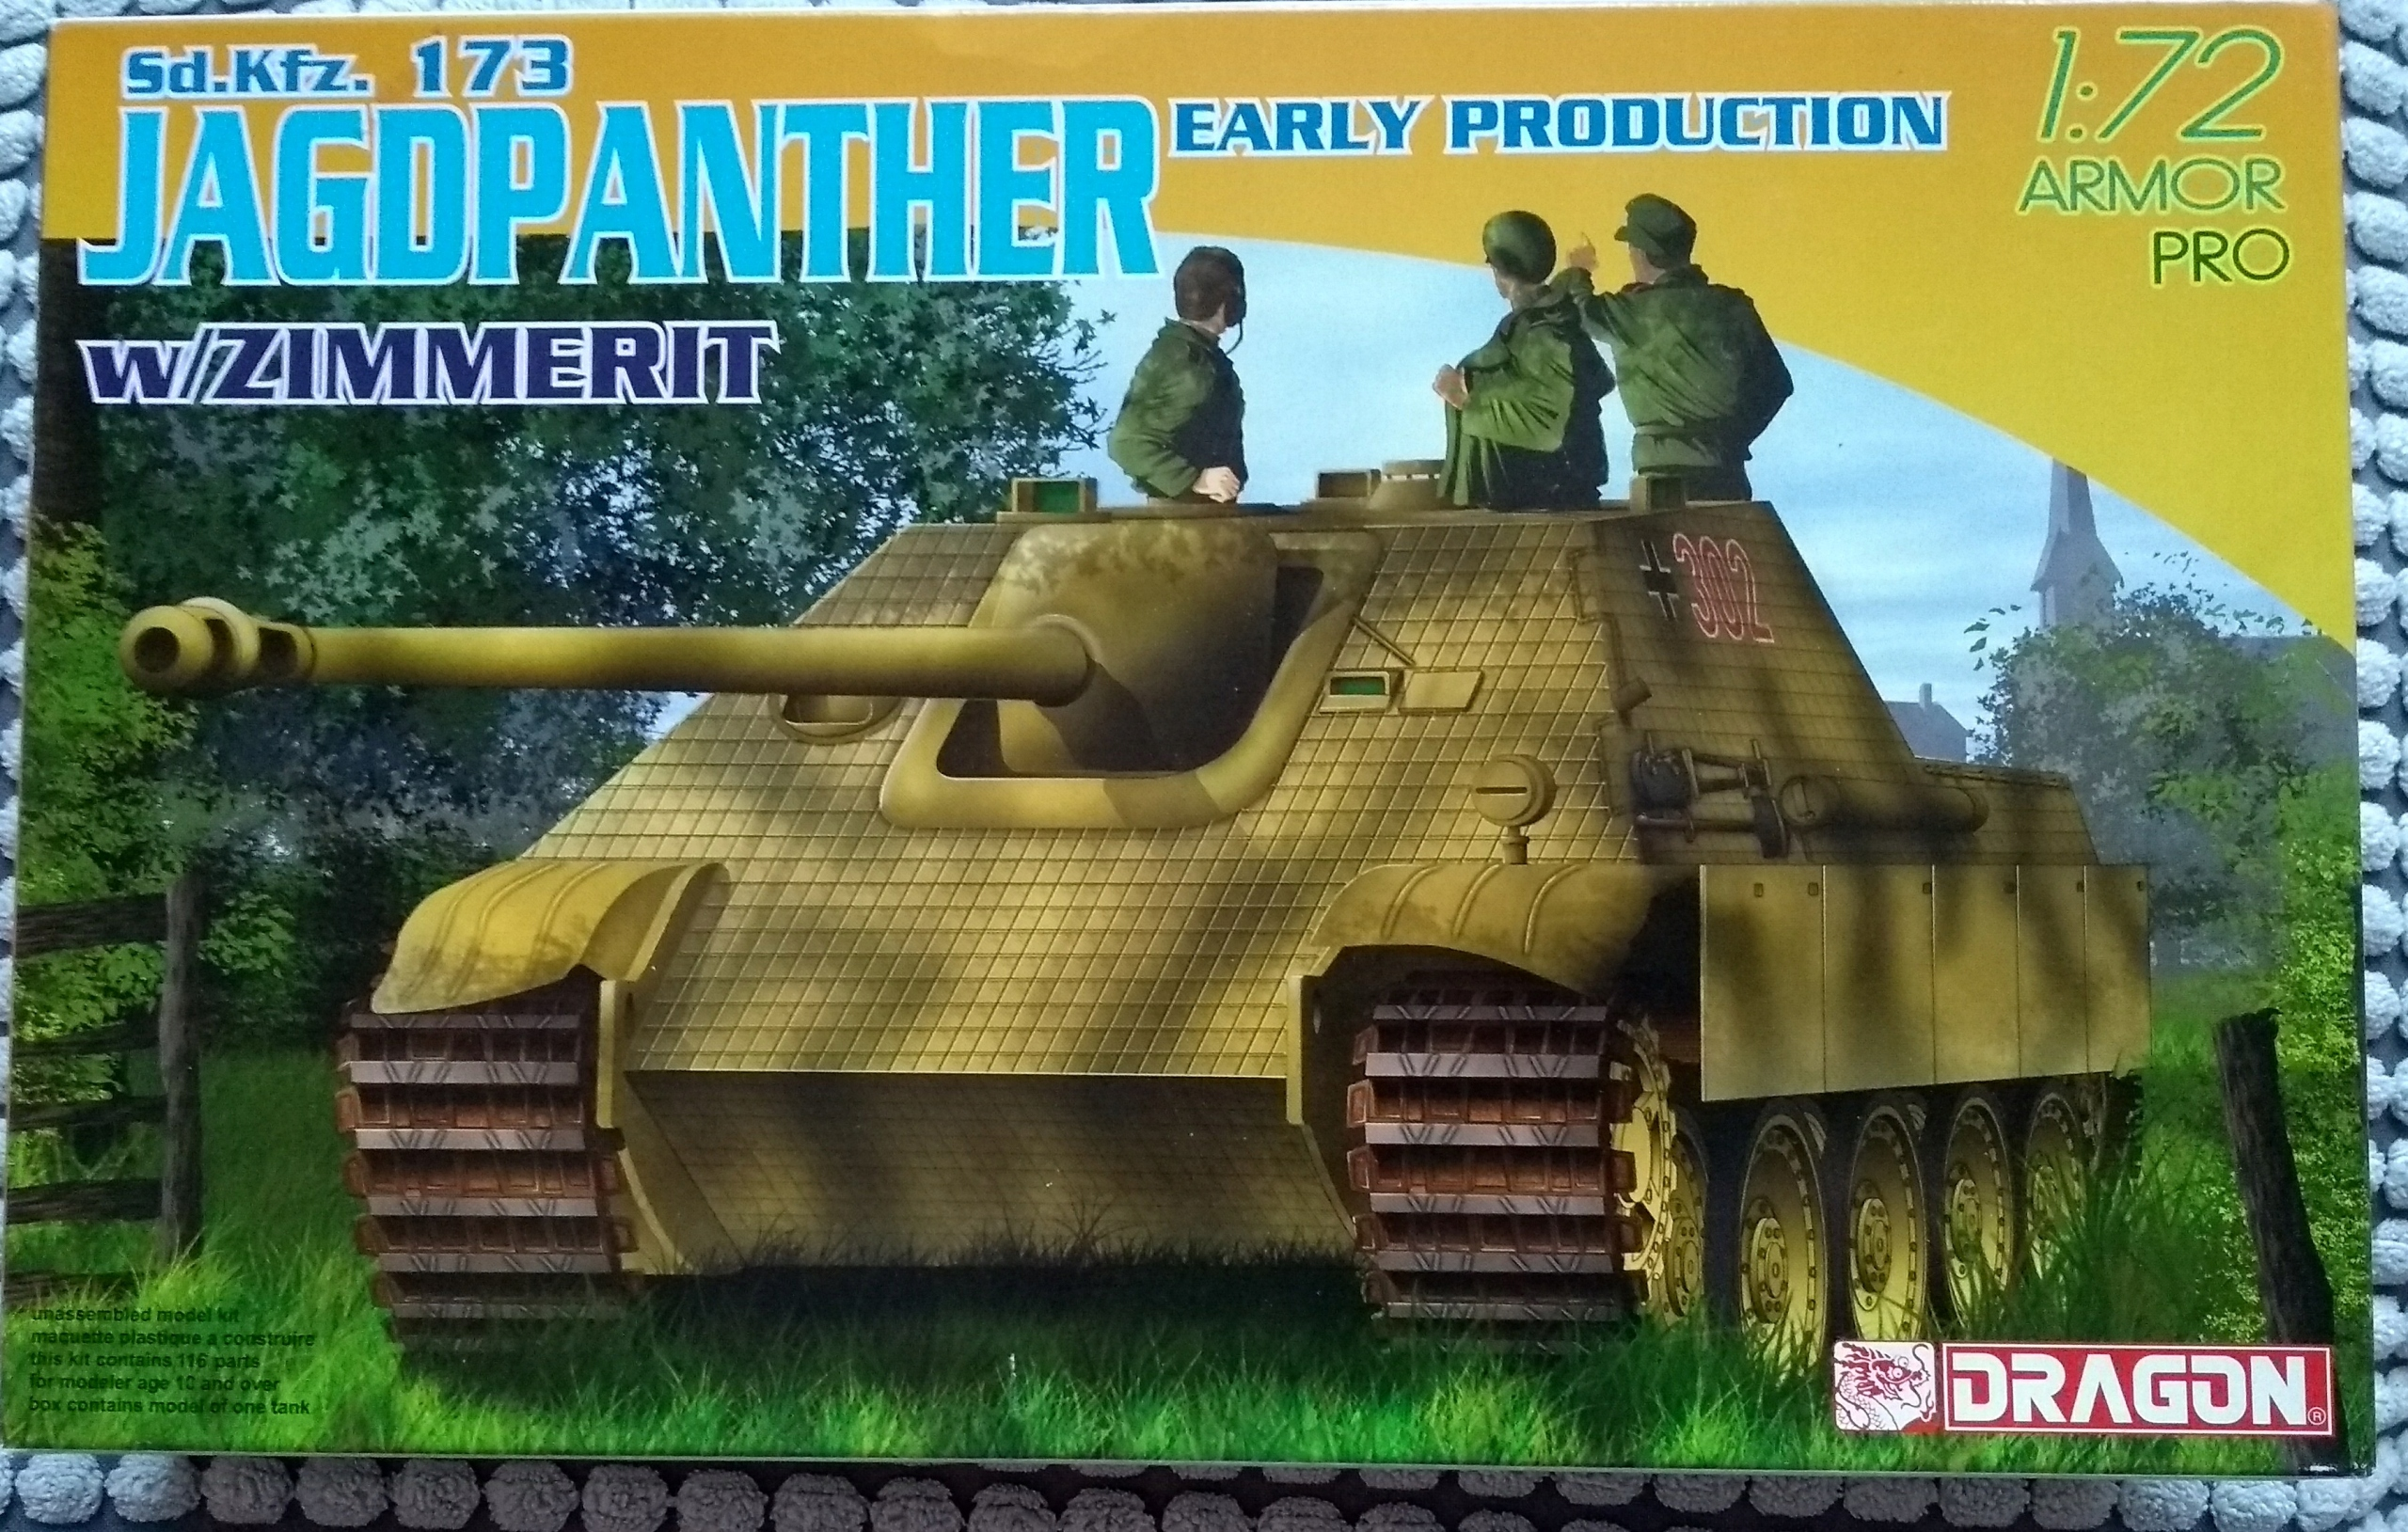 Jagdpanther Early.Zimmerit.Dragon 1/72.